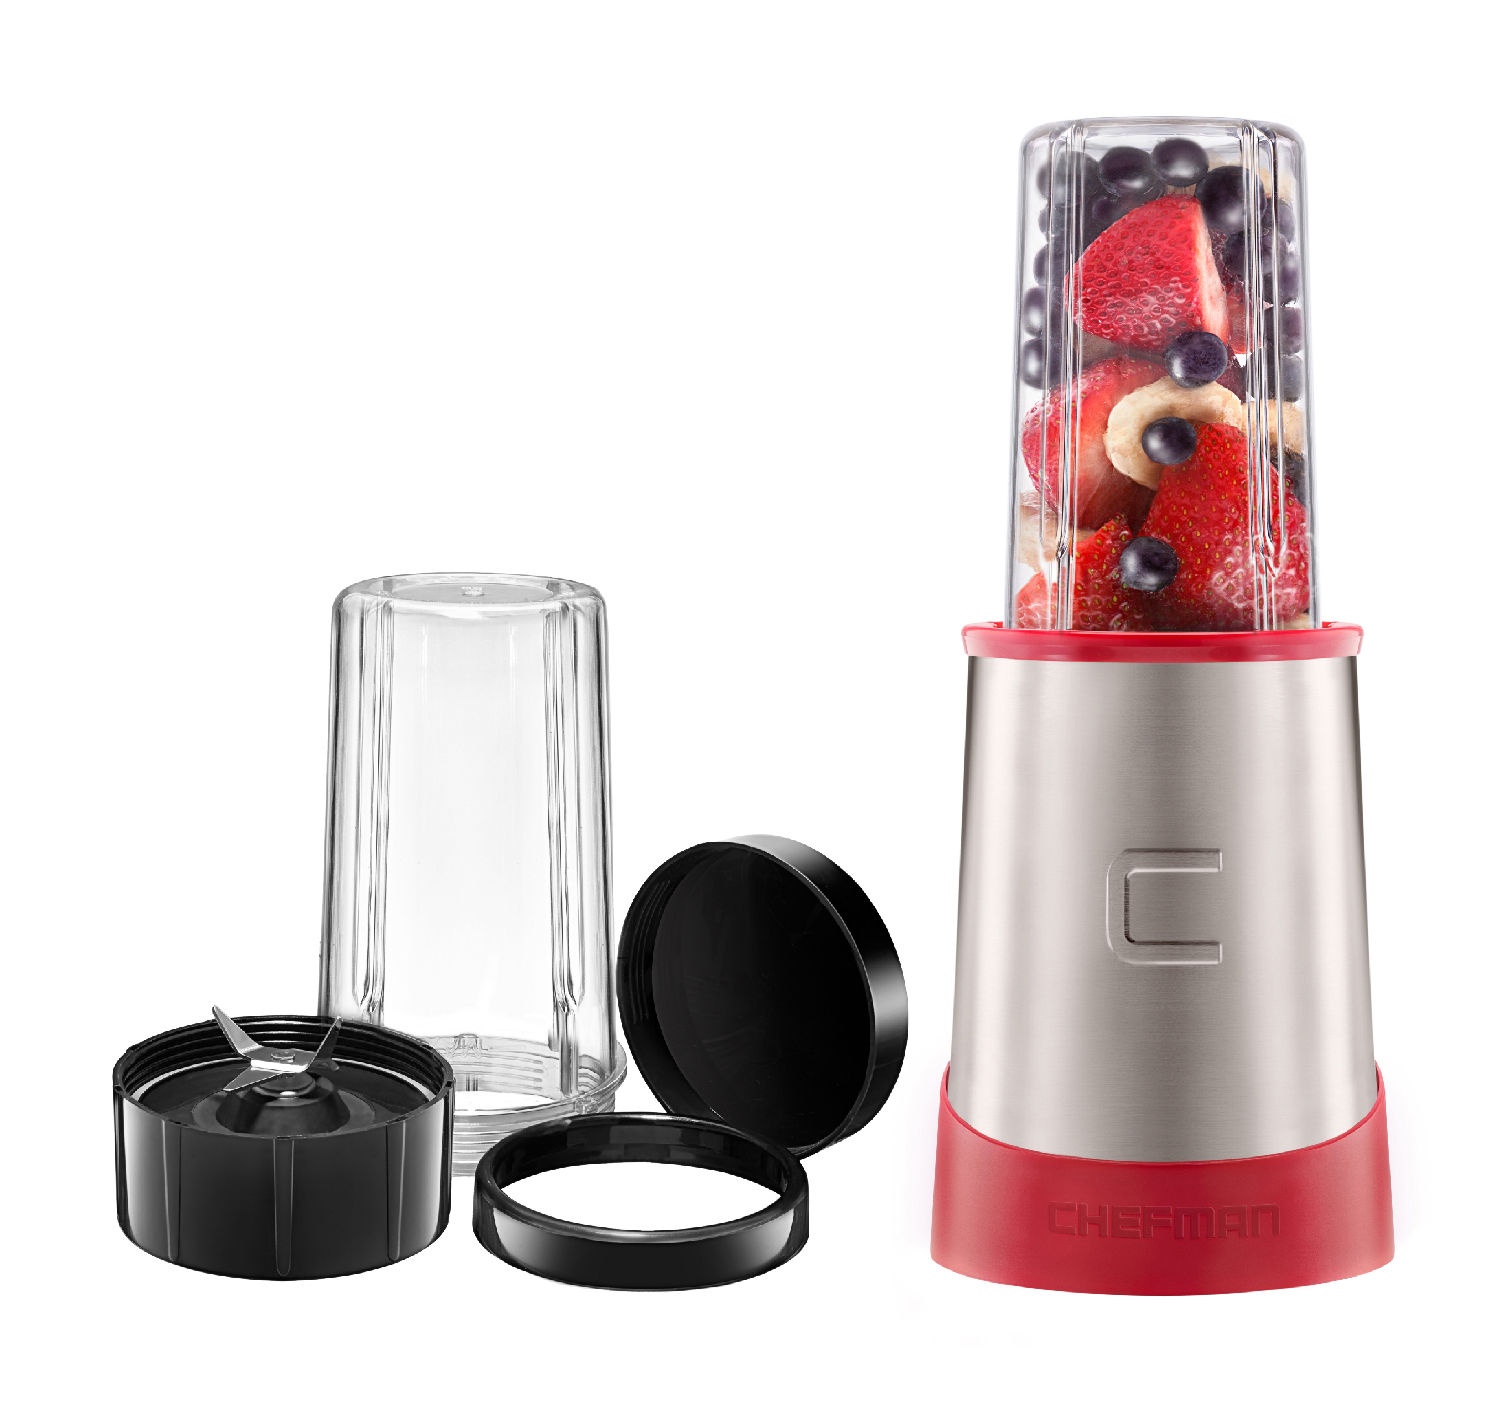 Chefman Ultimate Personal Smoothie Blender, Red